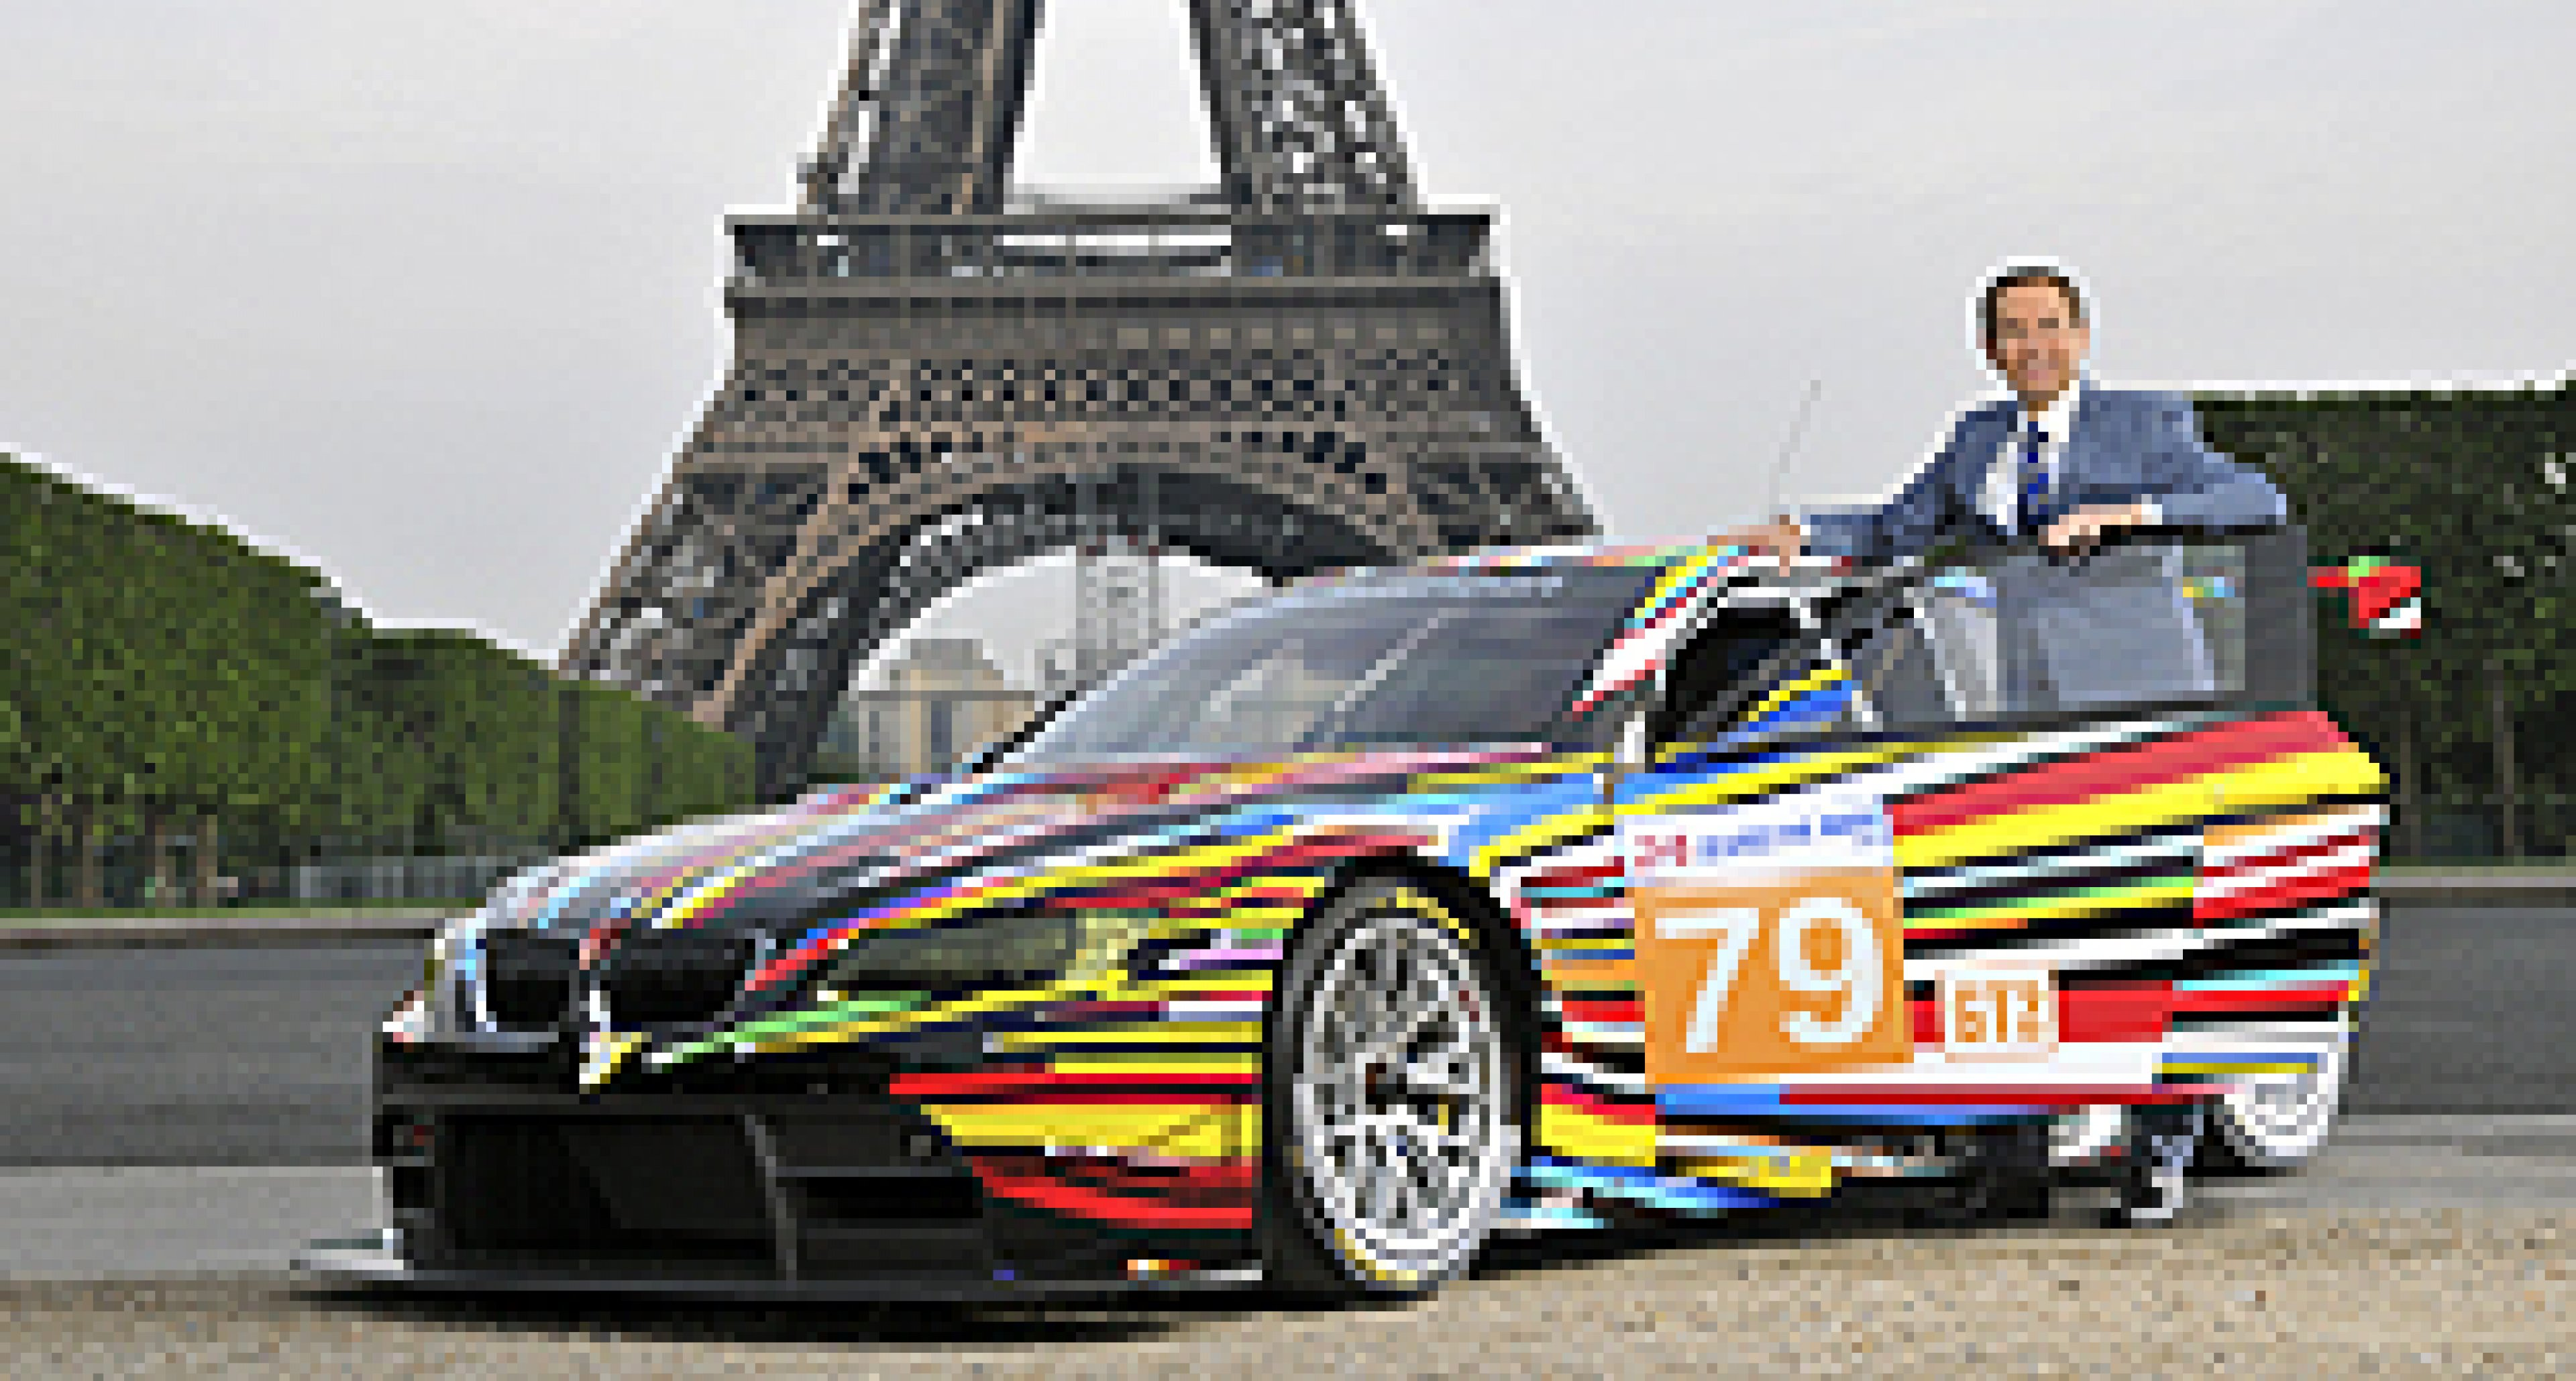 2010 BMW Art Car Exhibited at the Pompidou Centre